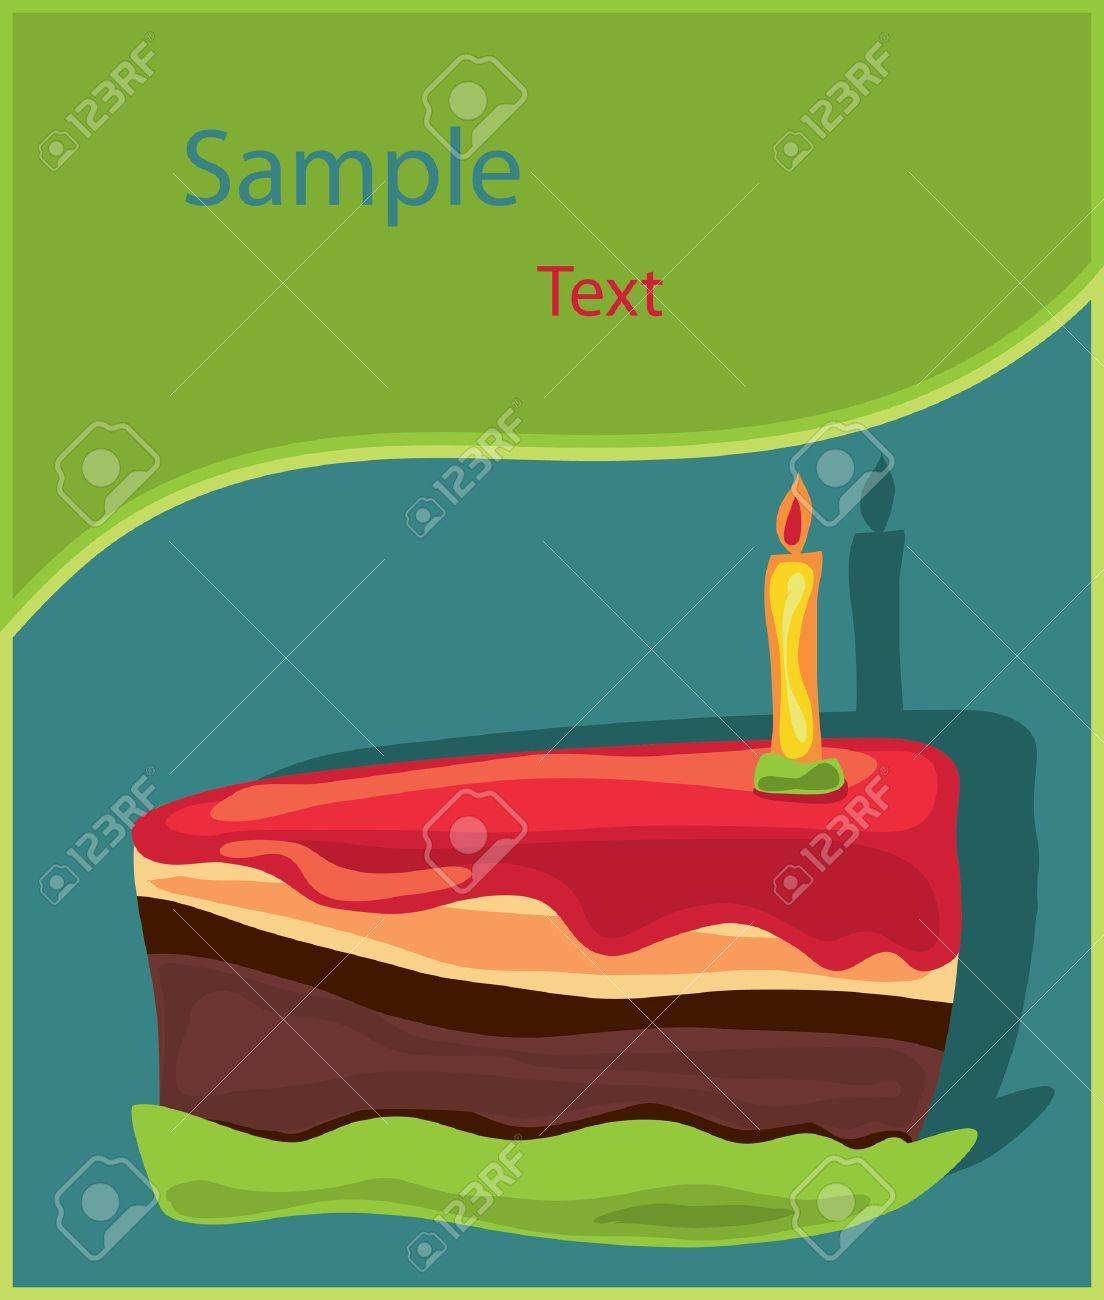 Piece of birthday Cake with candle. Stock Vector - 9934708